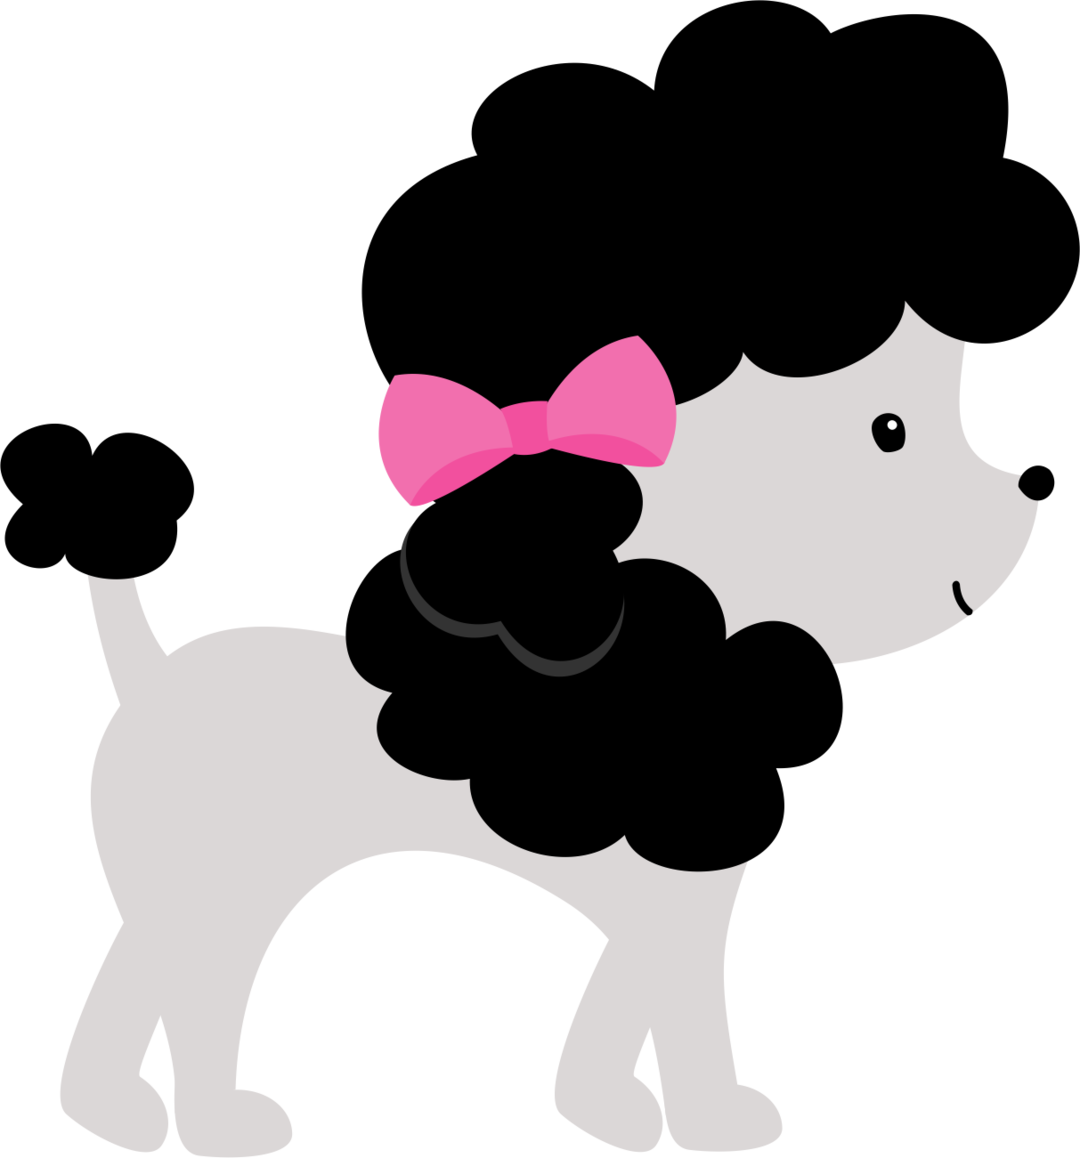 Poodle svg clip art. Black and white